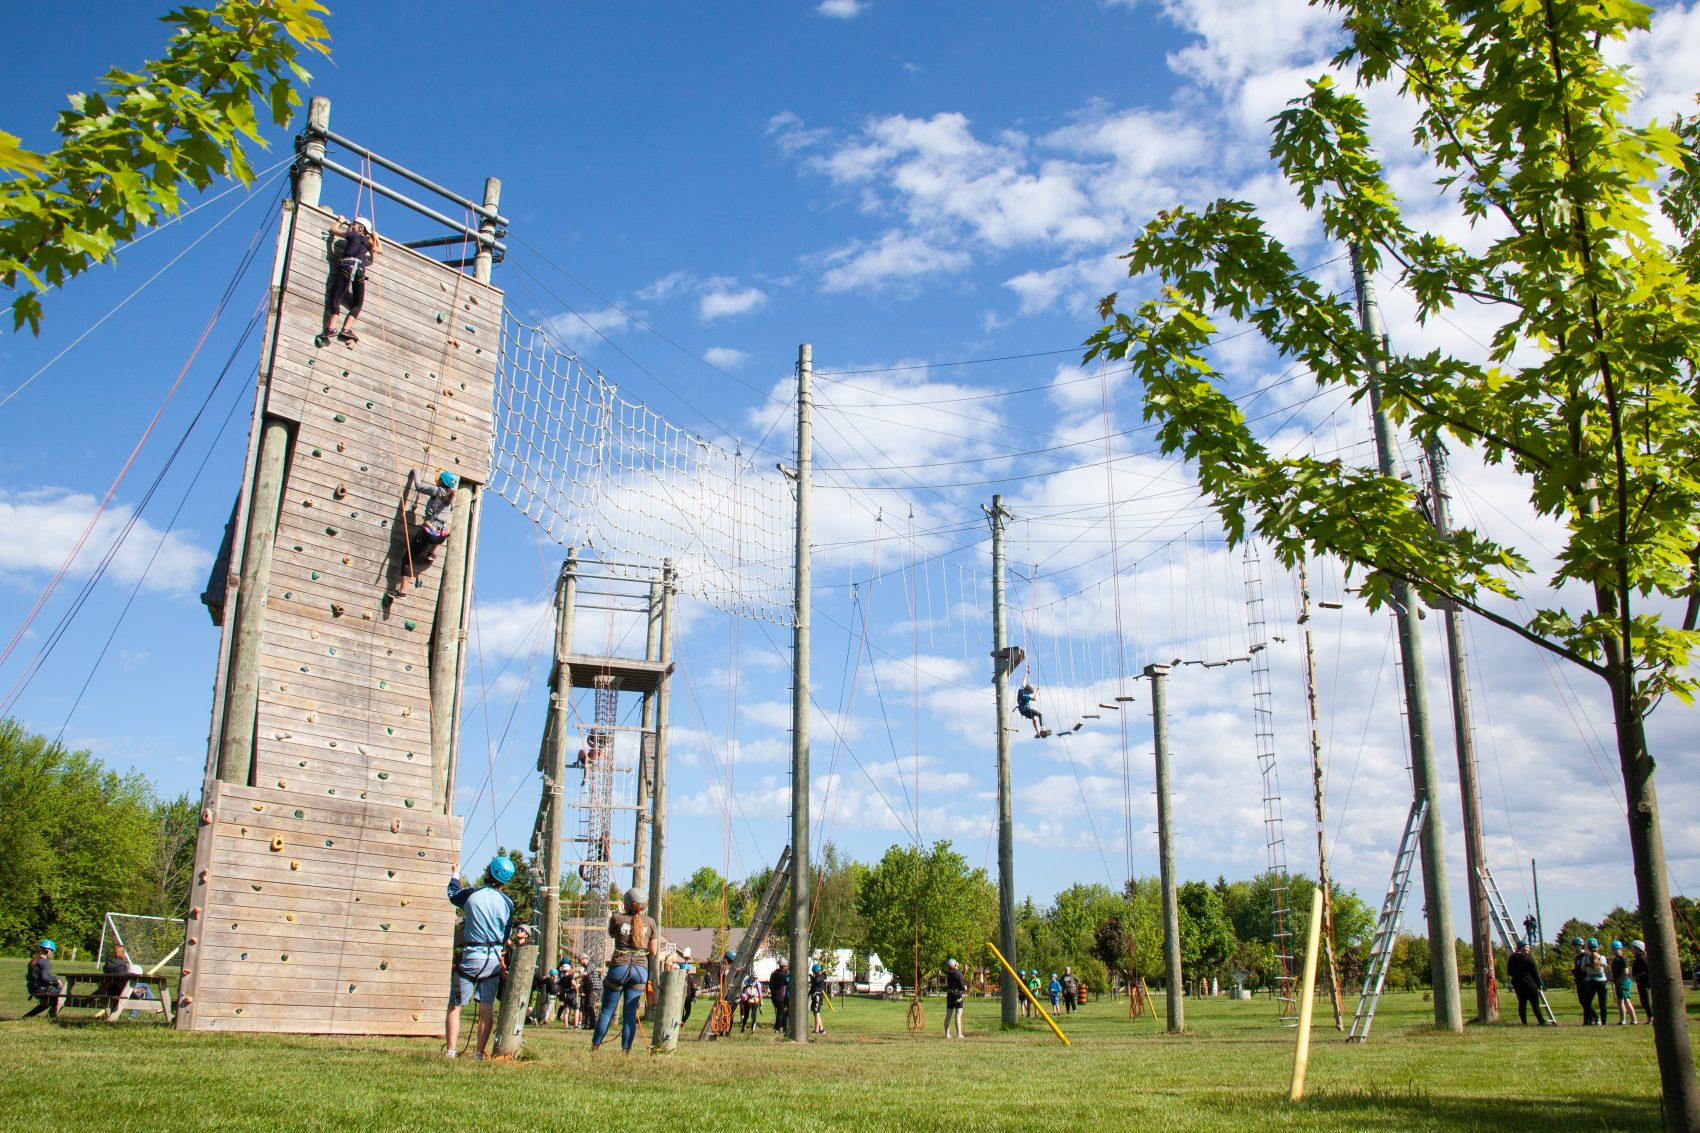 A scenic view is captured showing the high ropes course at summer camp.